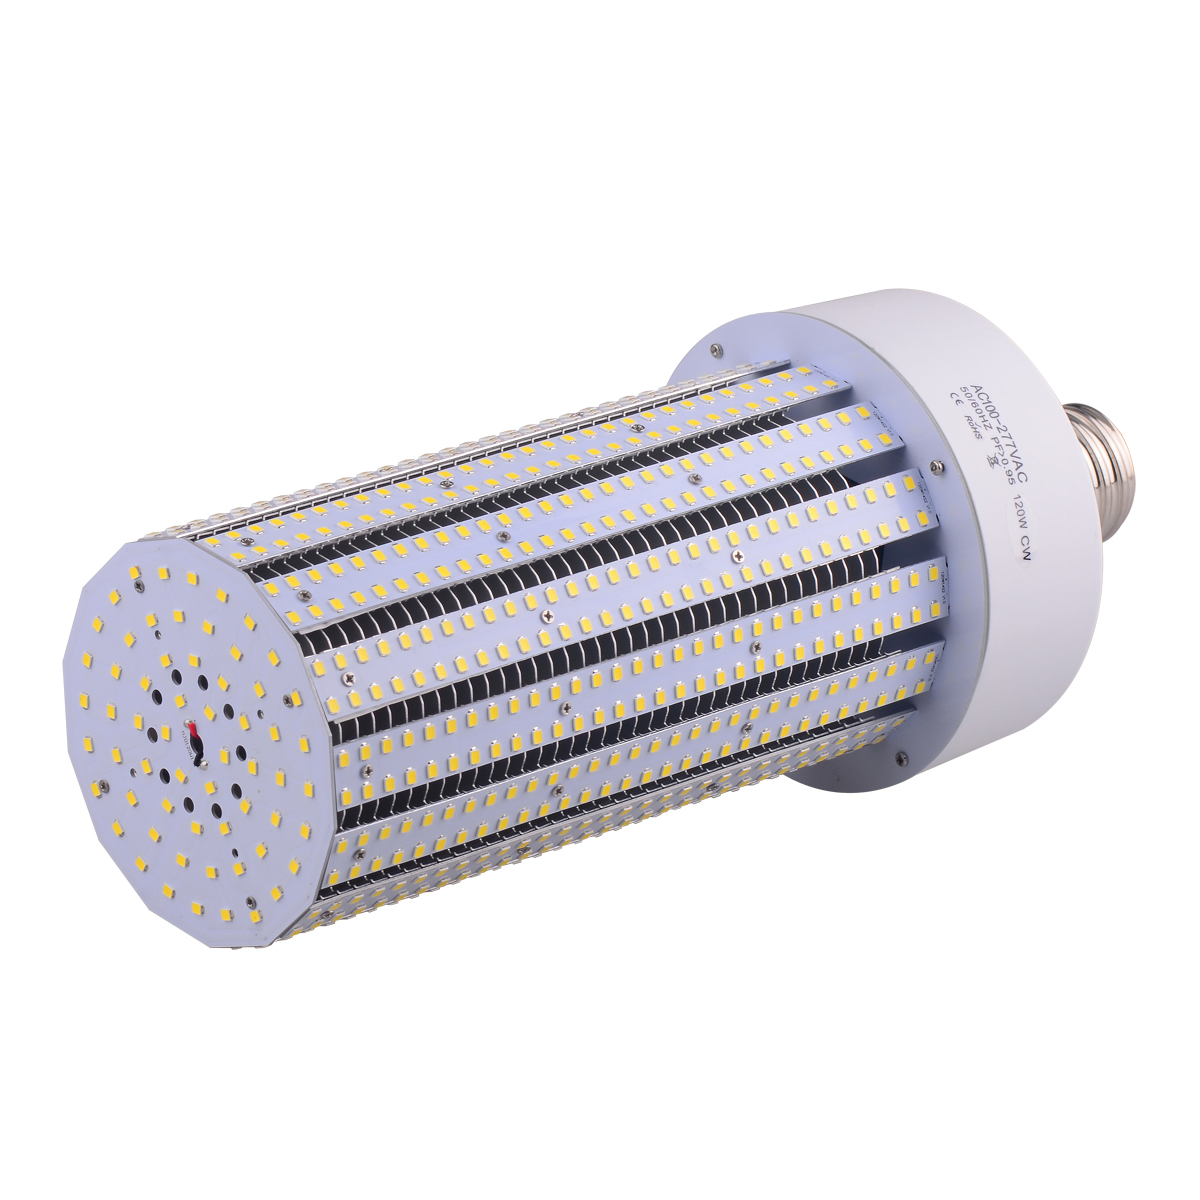 100 Watt Led Corn Cob Light (3)